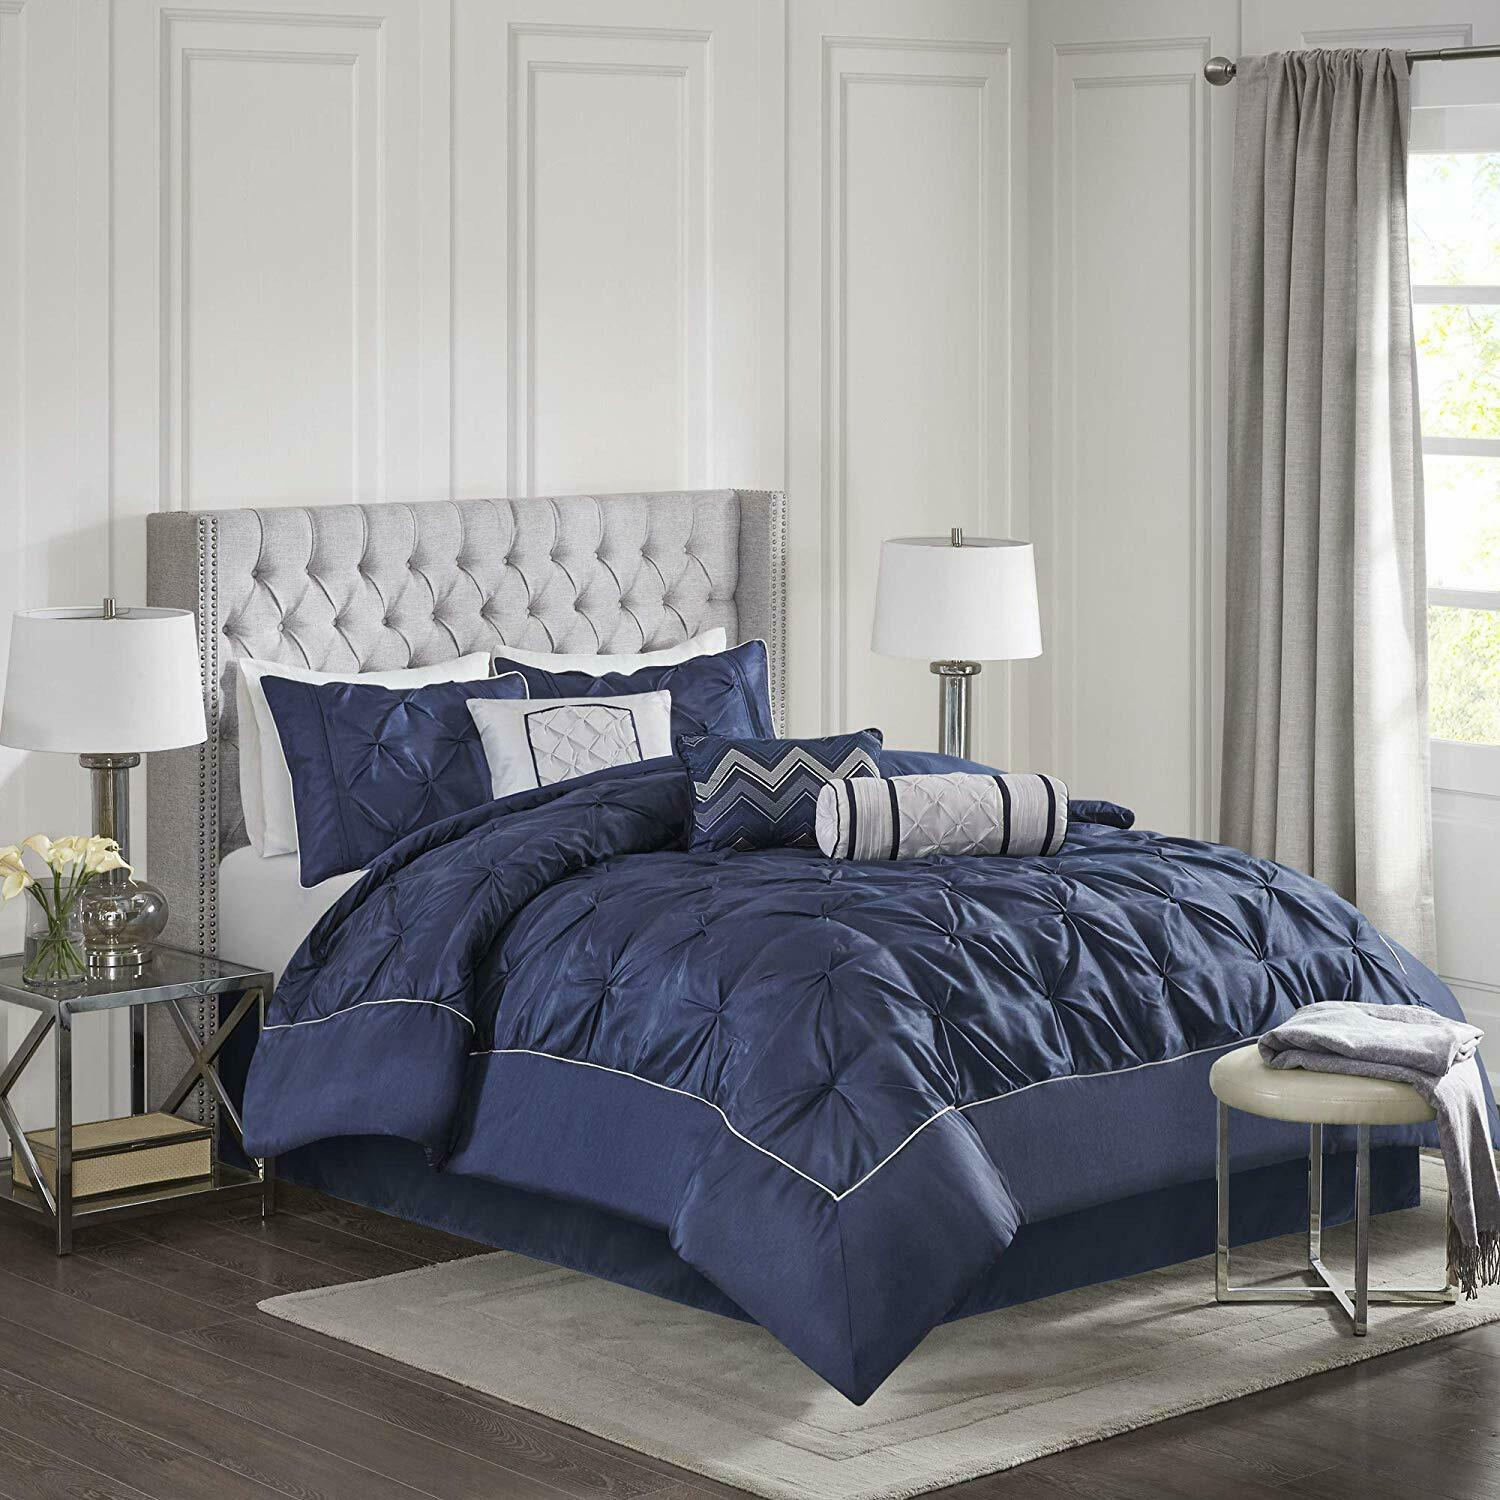 Madison Park Laurel Queen Size Bed Comforter Set Bed In A Bag